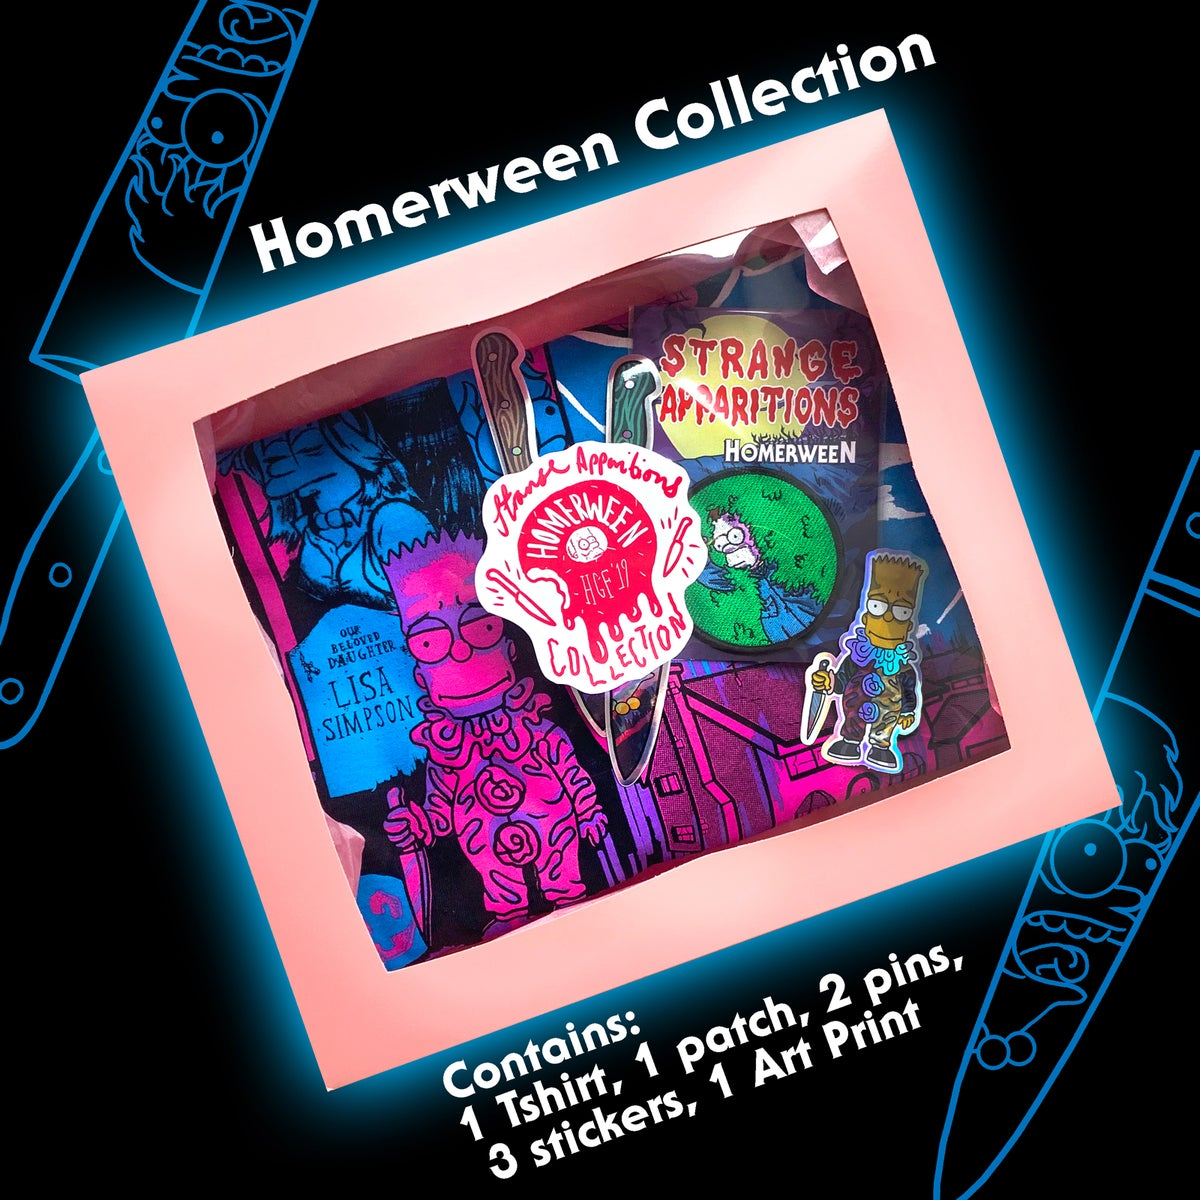 Image of Homerween Collector's Box